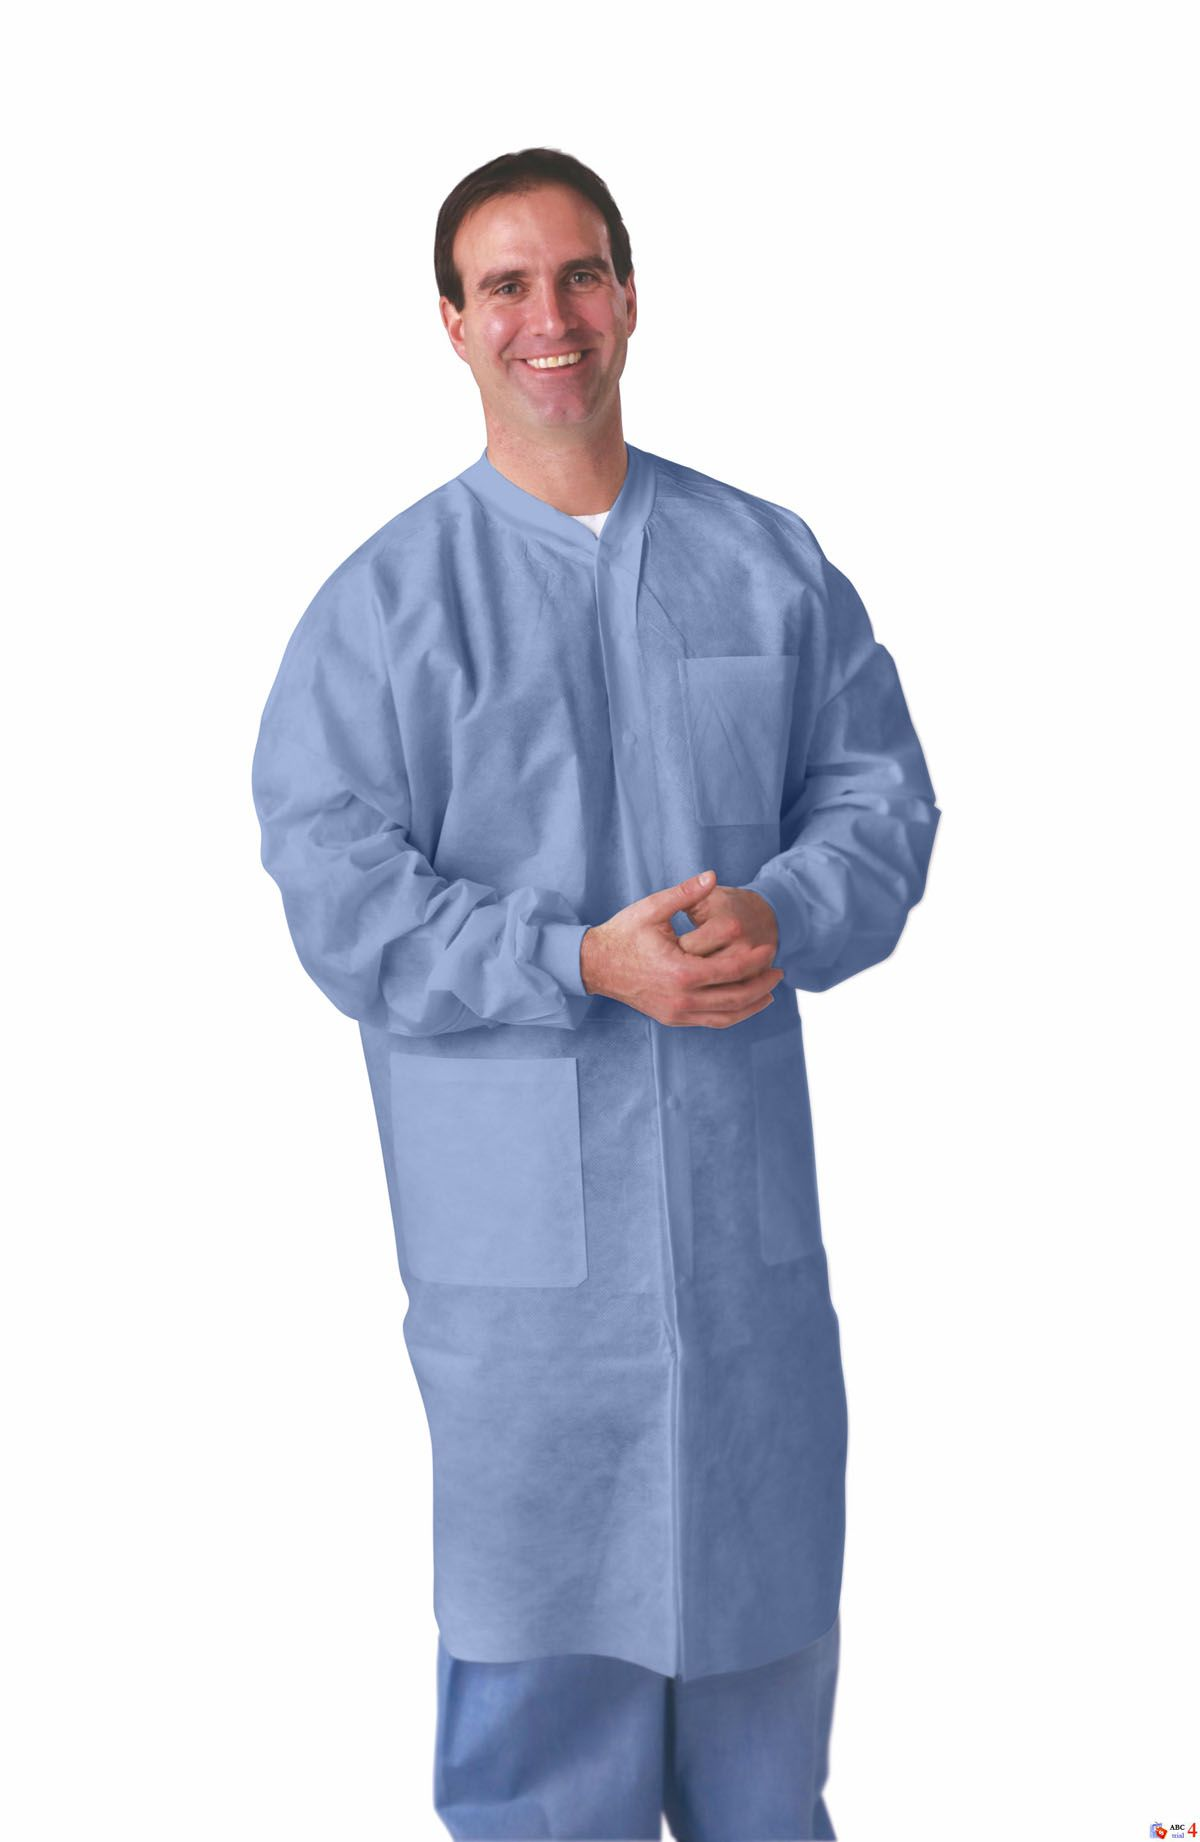 Knit Cuff/Traditional Collar Multi-Layer Lab Coat - Mltilyr, Knt Cf/Collar, Blue, 2Xl, Box of 30